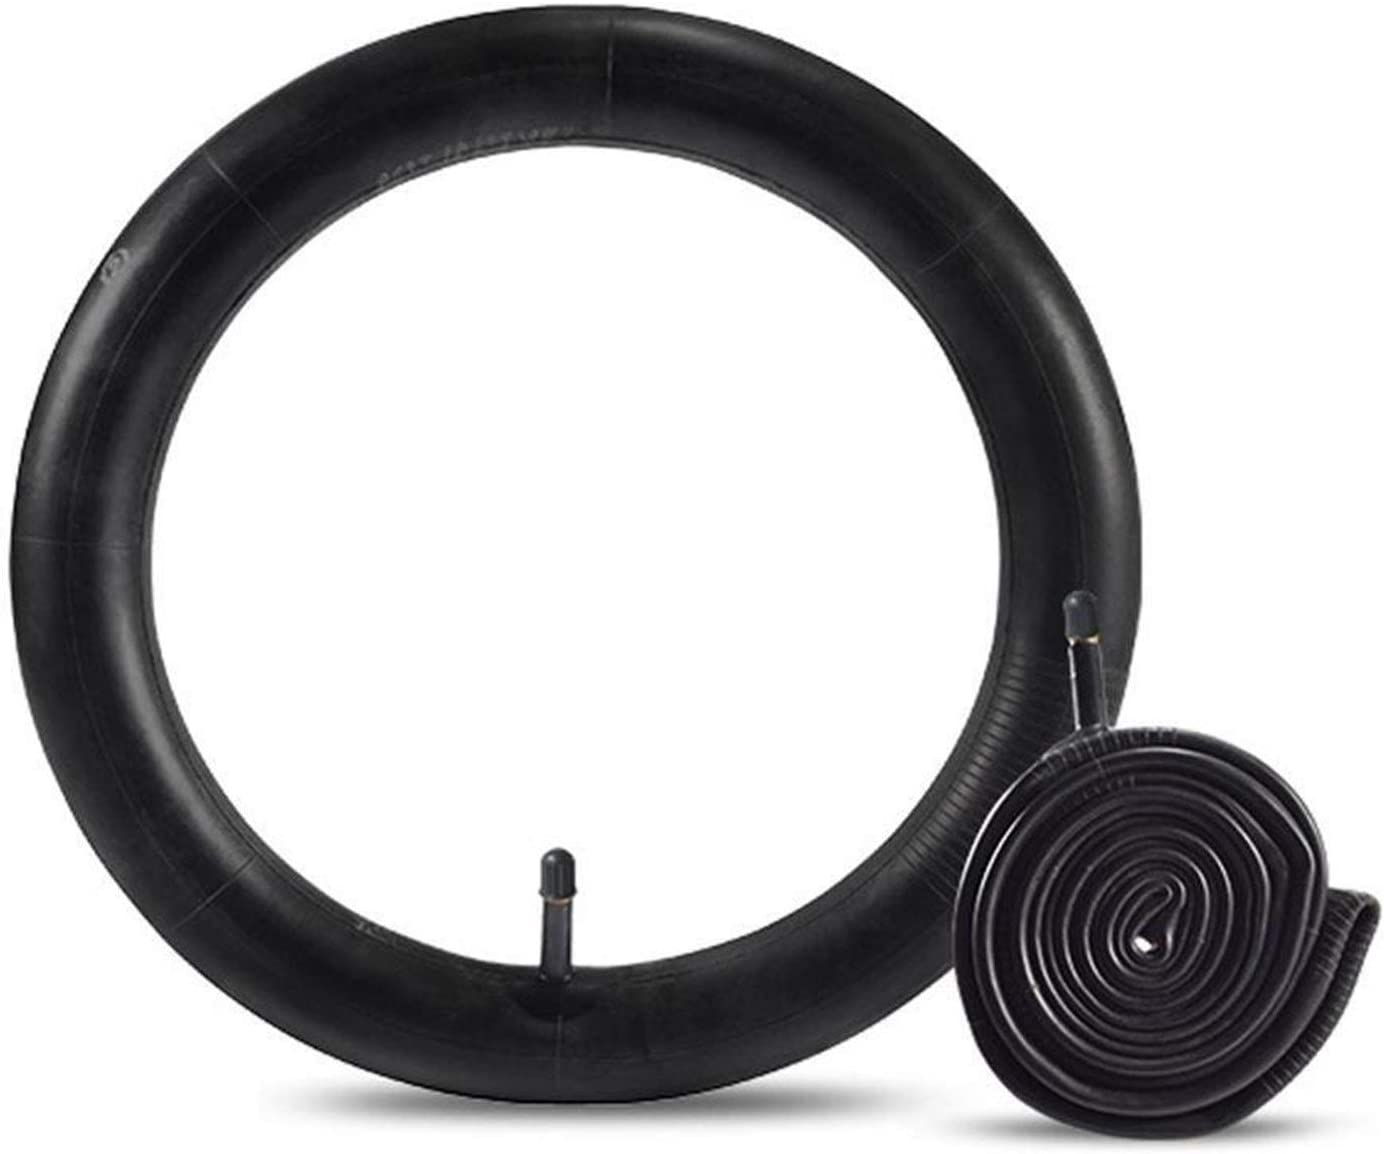 MNZDDDP 2 Durable Bicycle Tire Road service 18 16 24 22 Vehicle 20 Max 41% OFF